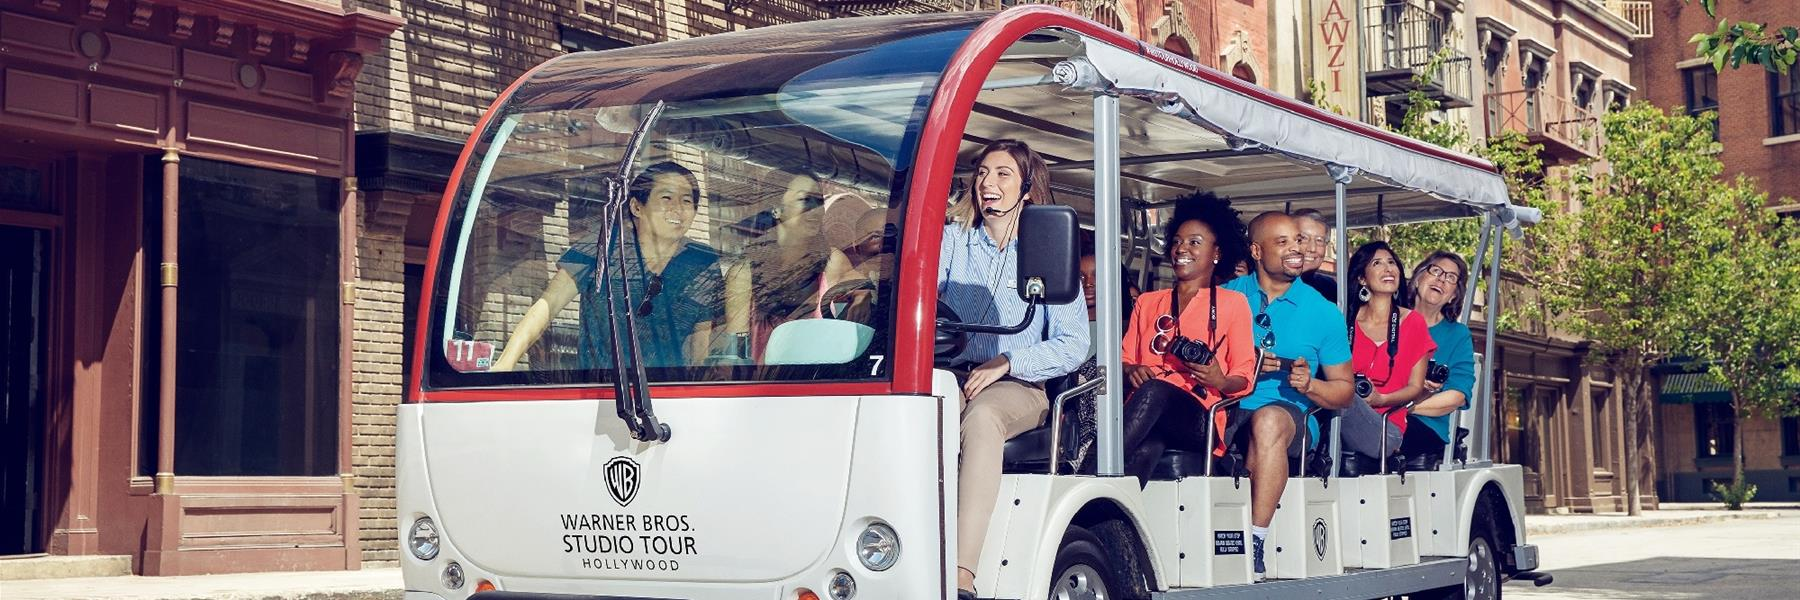 Warner Bros. Studio Tour Hollywood in Burbank, California